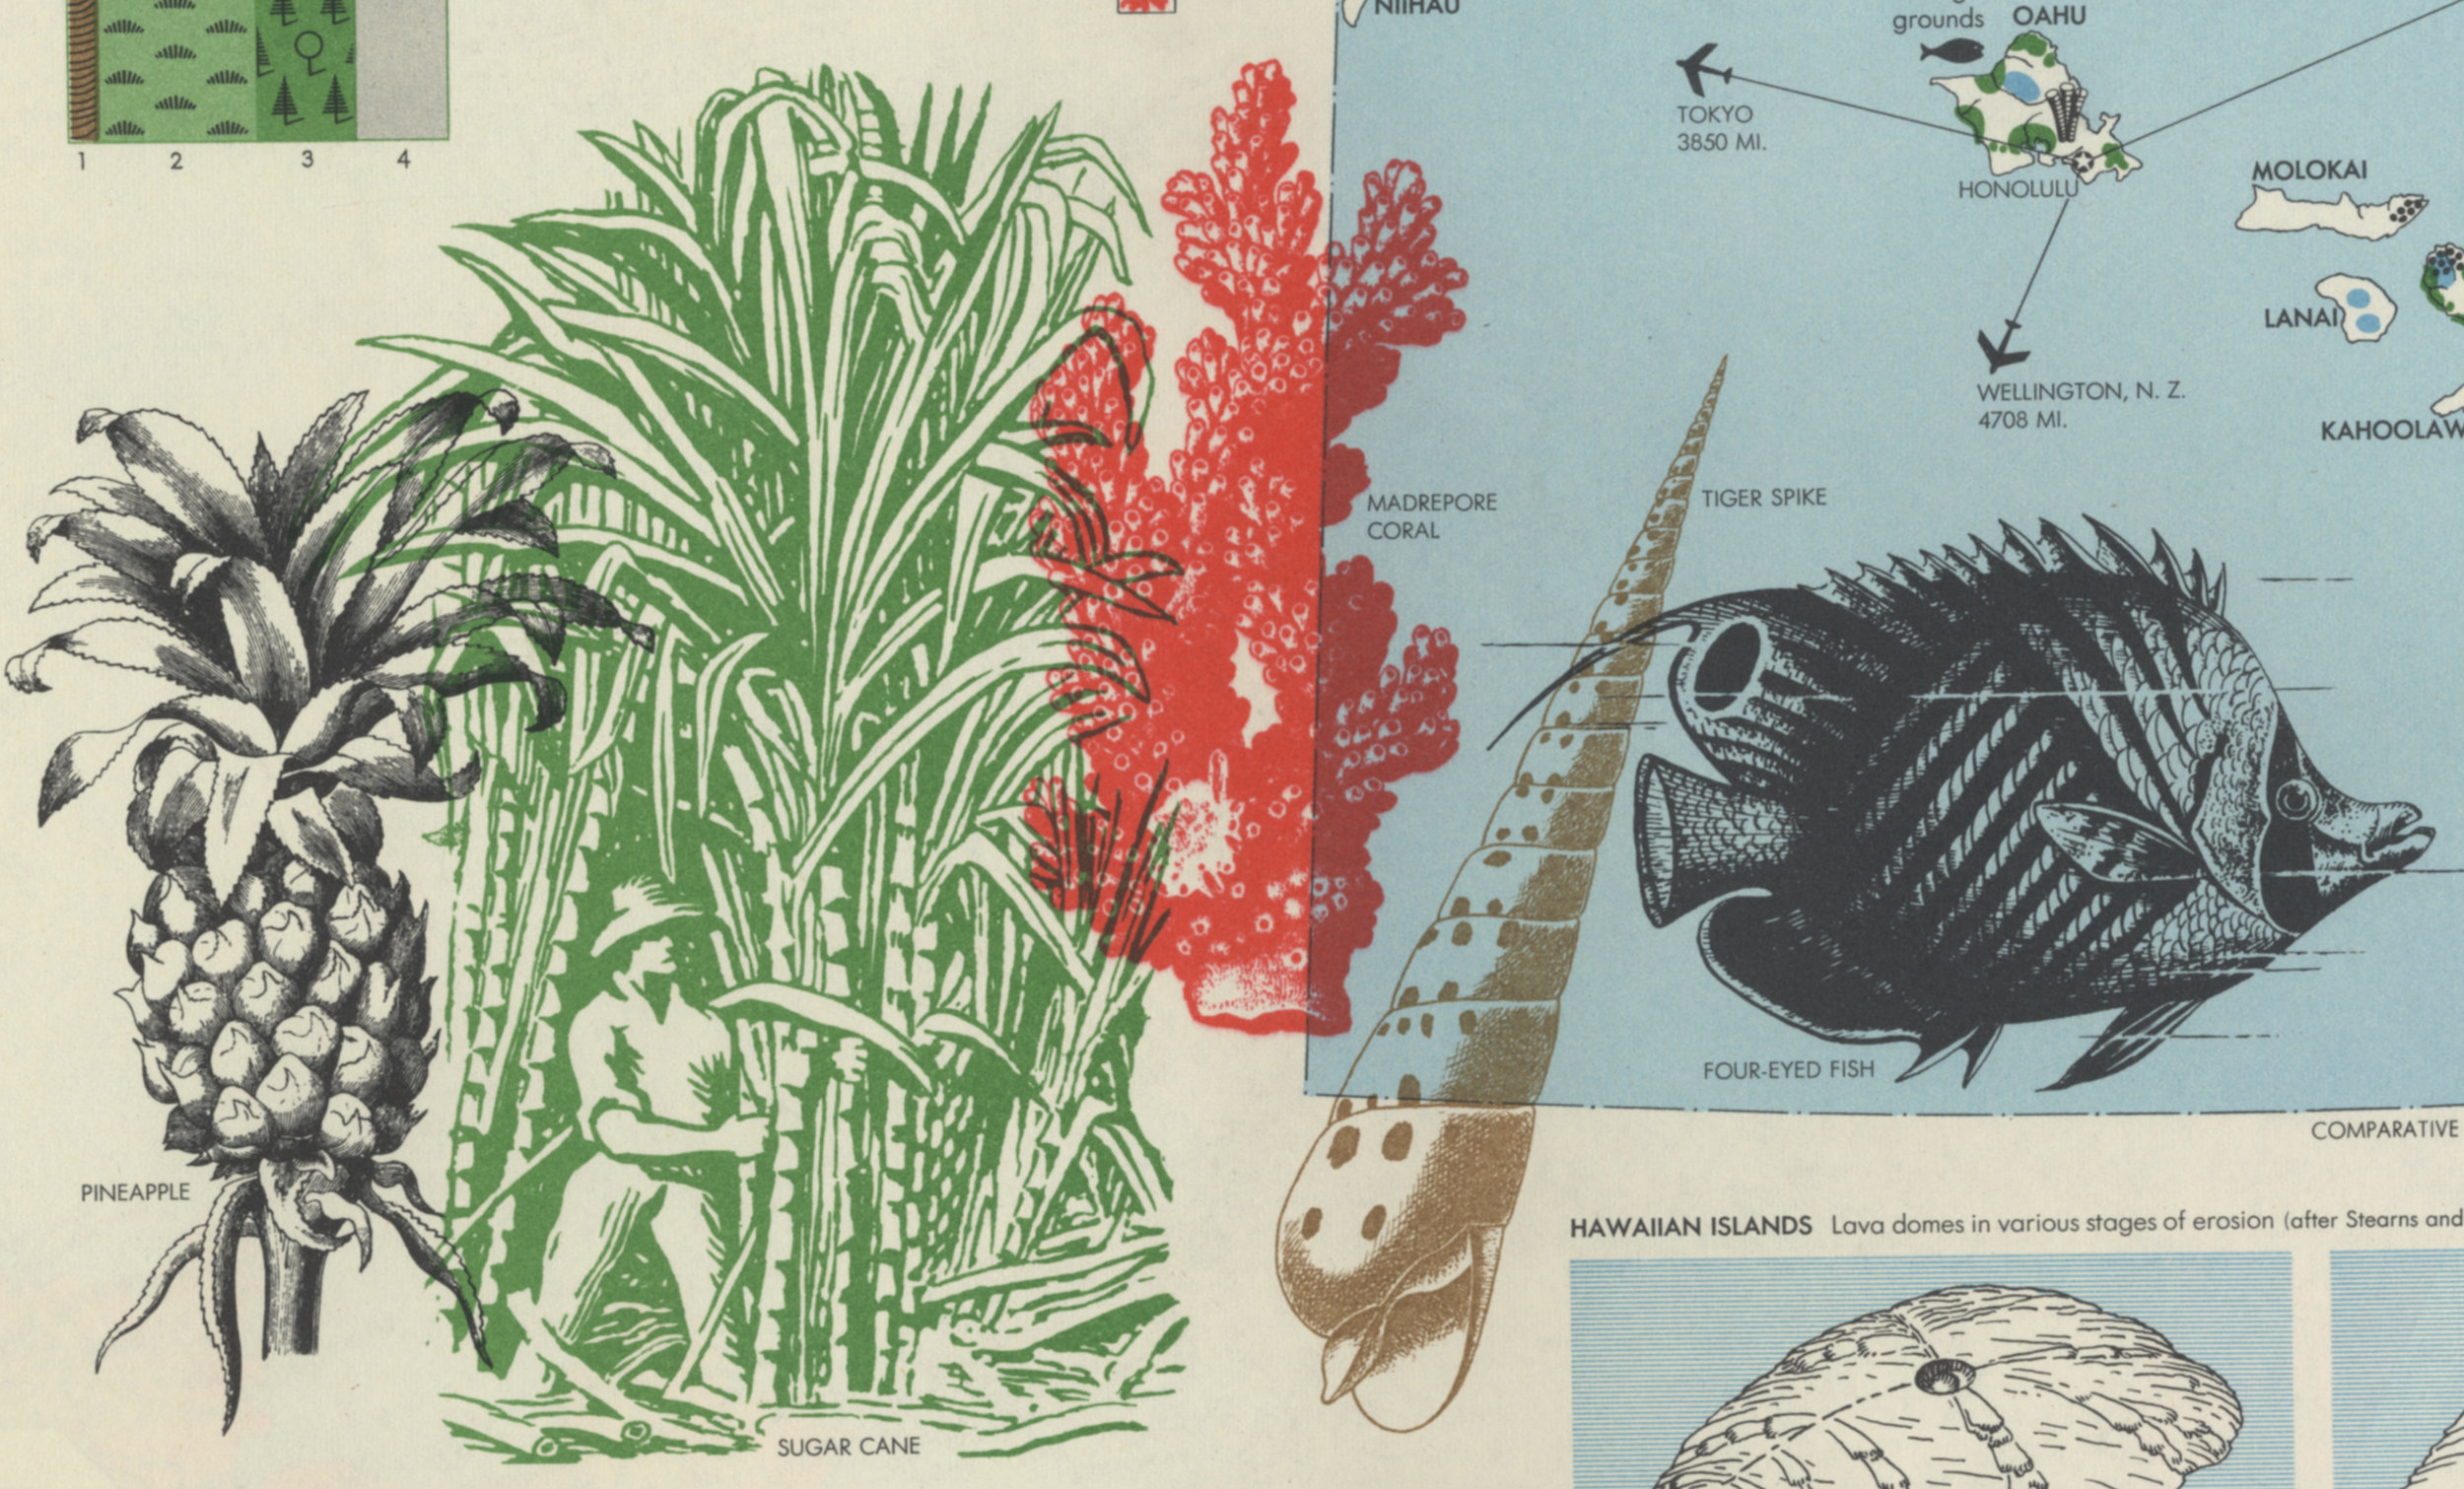 """World Geographic Atlas, designed by Herbert Bayer. Published by the Container Corporation of America (CCA) in 1953. This is a breathtakingly beautiful book. Bayer was a Bauhaus graphic designer relocated to the States. This particular image shows flora and fauna of the Hawaiian Islands. The items overlap but retain their integrity through color and contrast. An approach which all but eliminates an implied """"container"""" for the illustrations (contrast, for example, with the French vocabulary words). This is a fragment of a large page, dense with information but intelligently placed."""